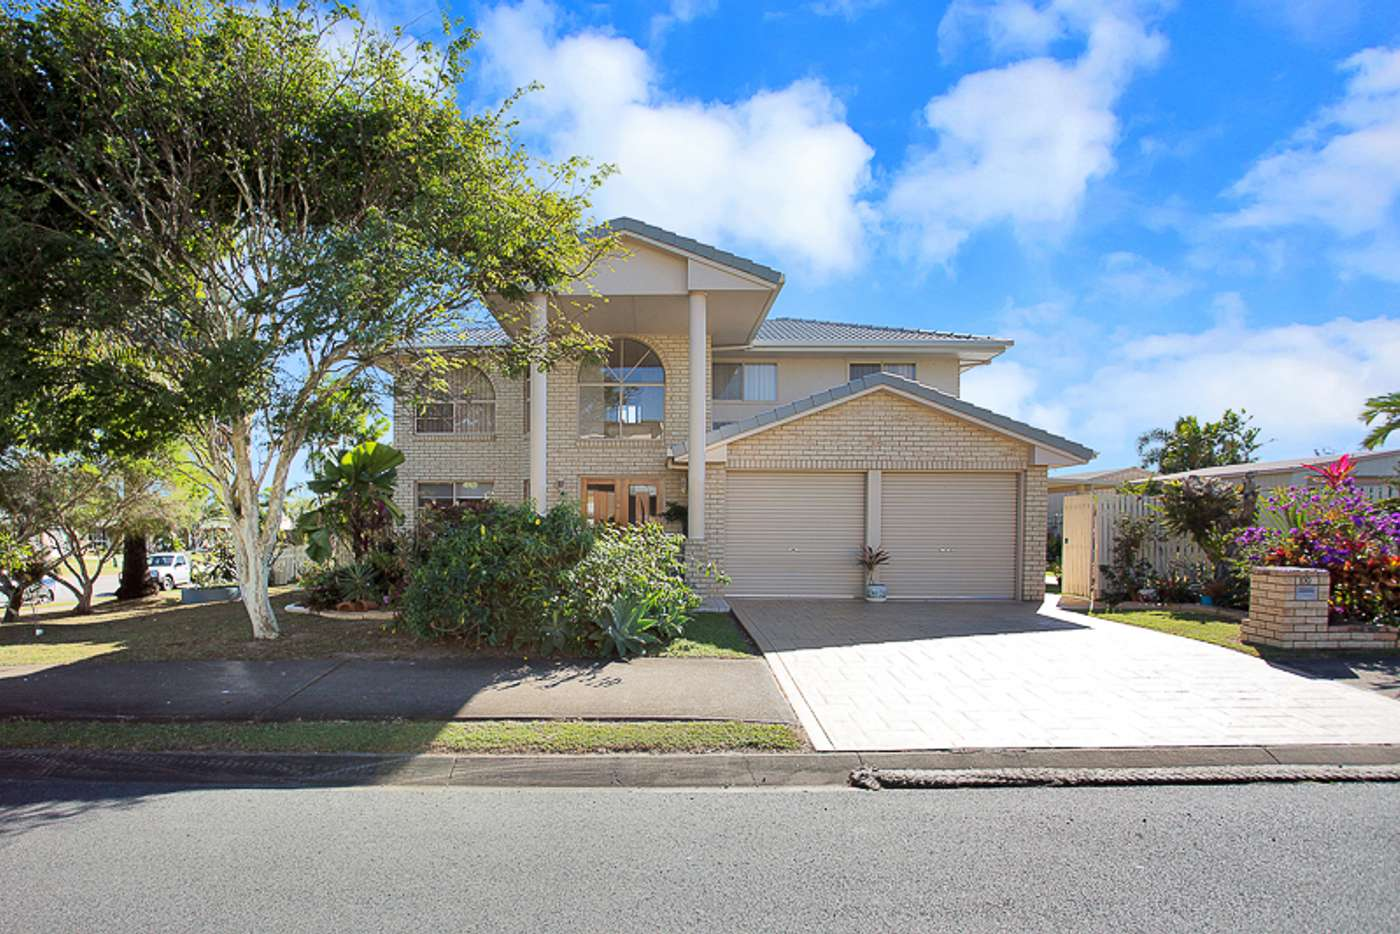 Main view of Homely house listing, 100 Eaglemount Road, Beaconsfield QLD 4740